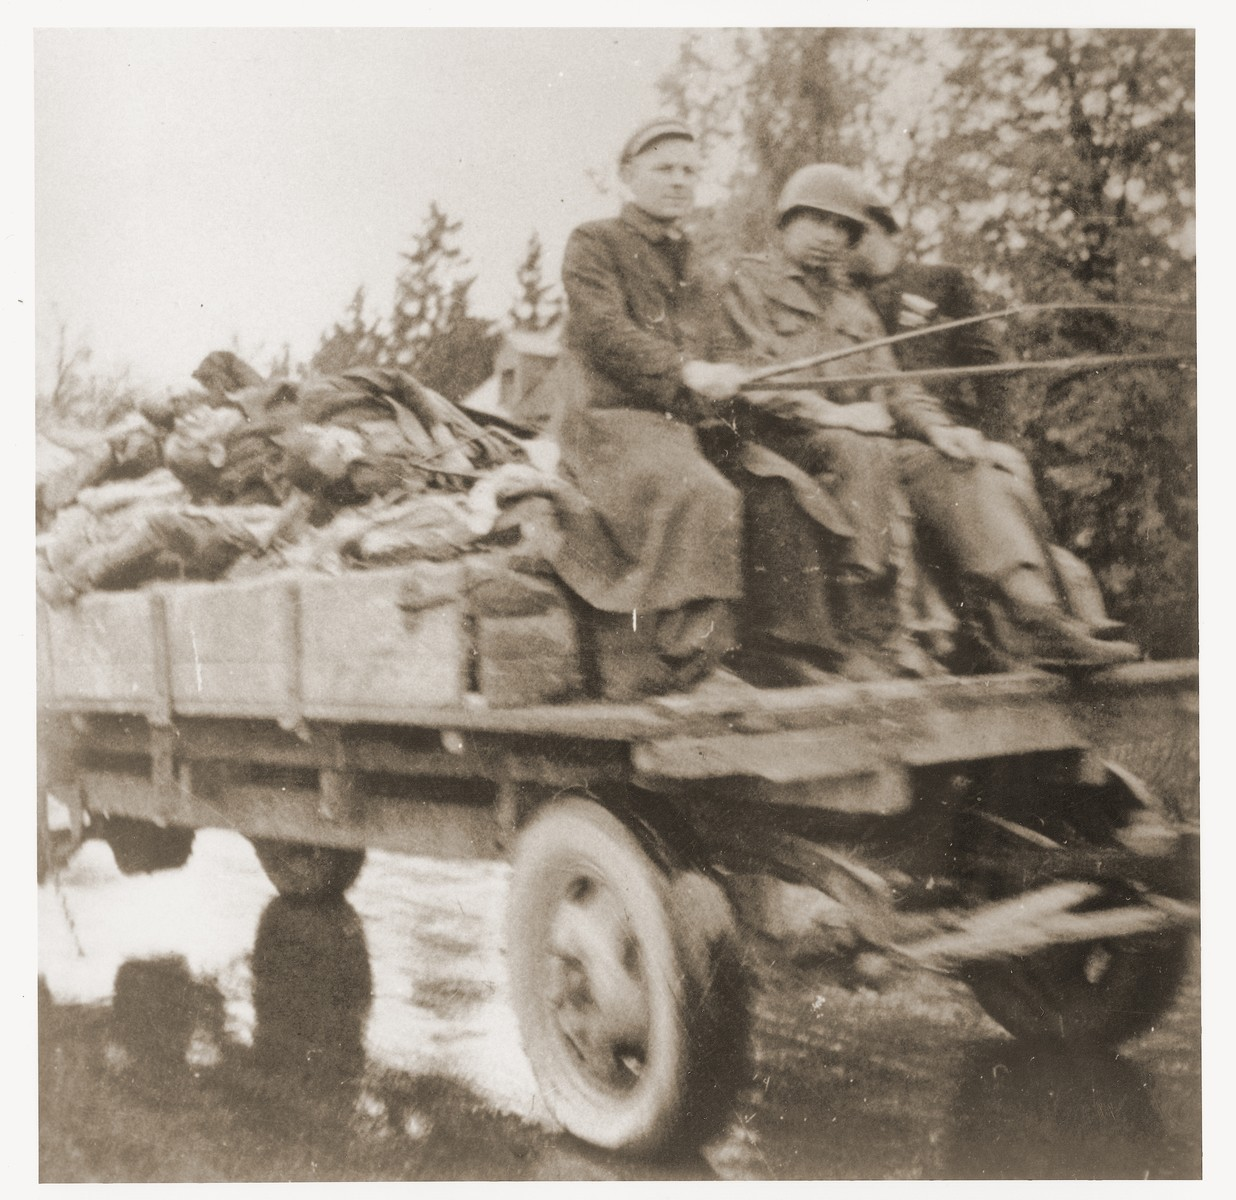 Wagons laden with corpses leave the Dachau concentration camp en route to a burial site.  Allied authorities required local farmers to drive their loaded carts through the town of Dachau as an education for the inhabitants.